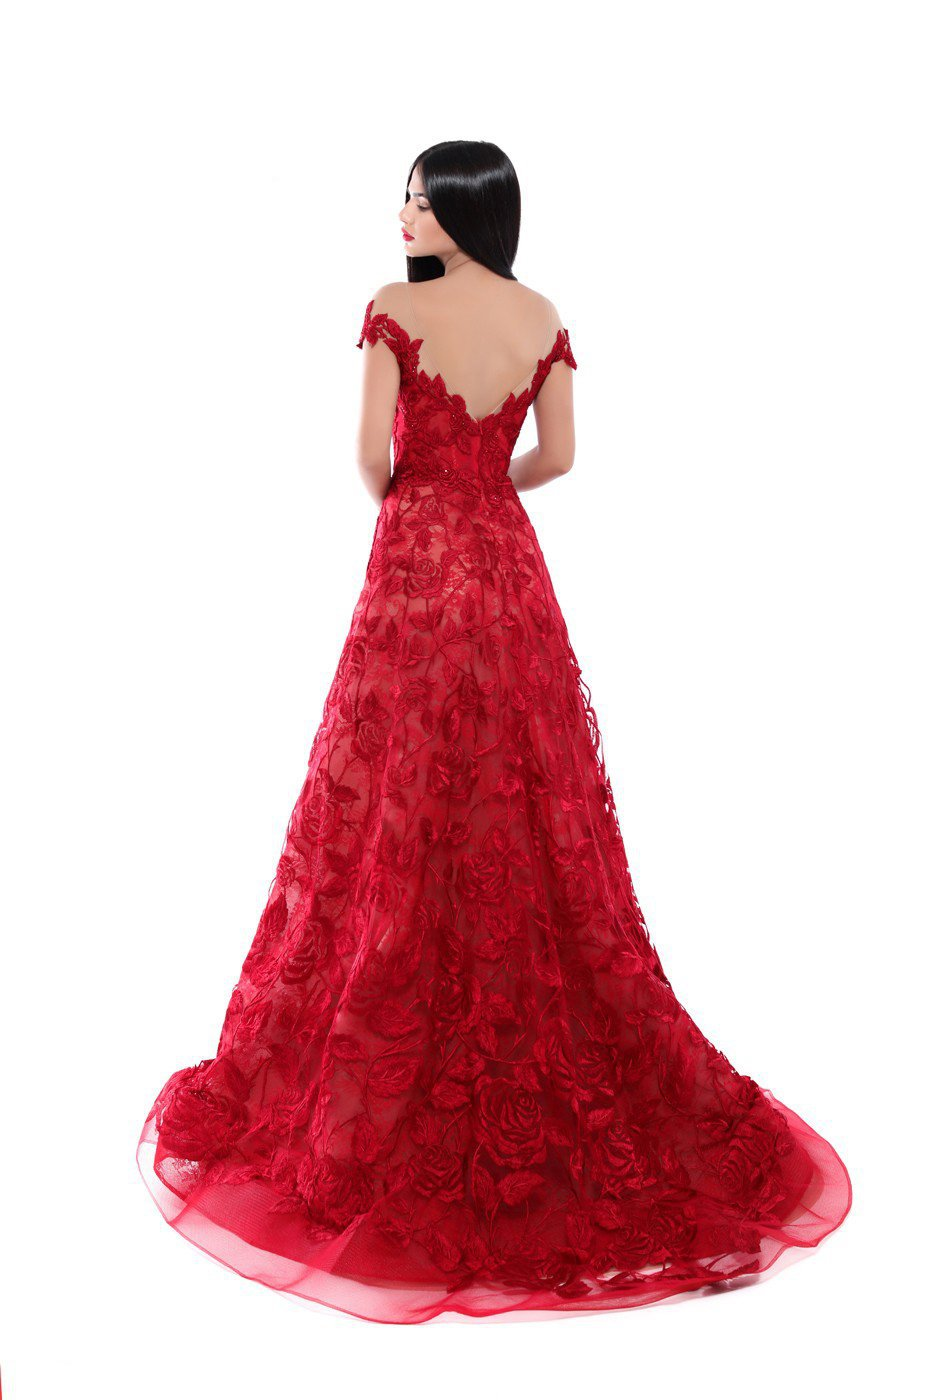 Tarik Ediz - 50500 Floral Lace Appliqued A-Line Prom Gown In Red